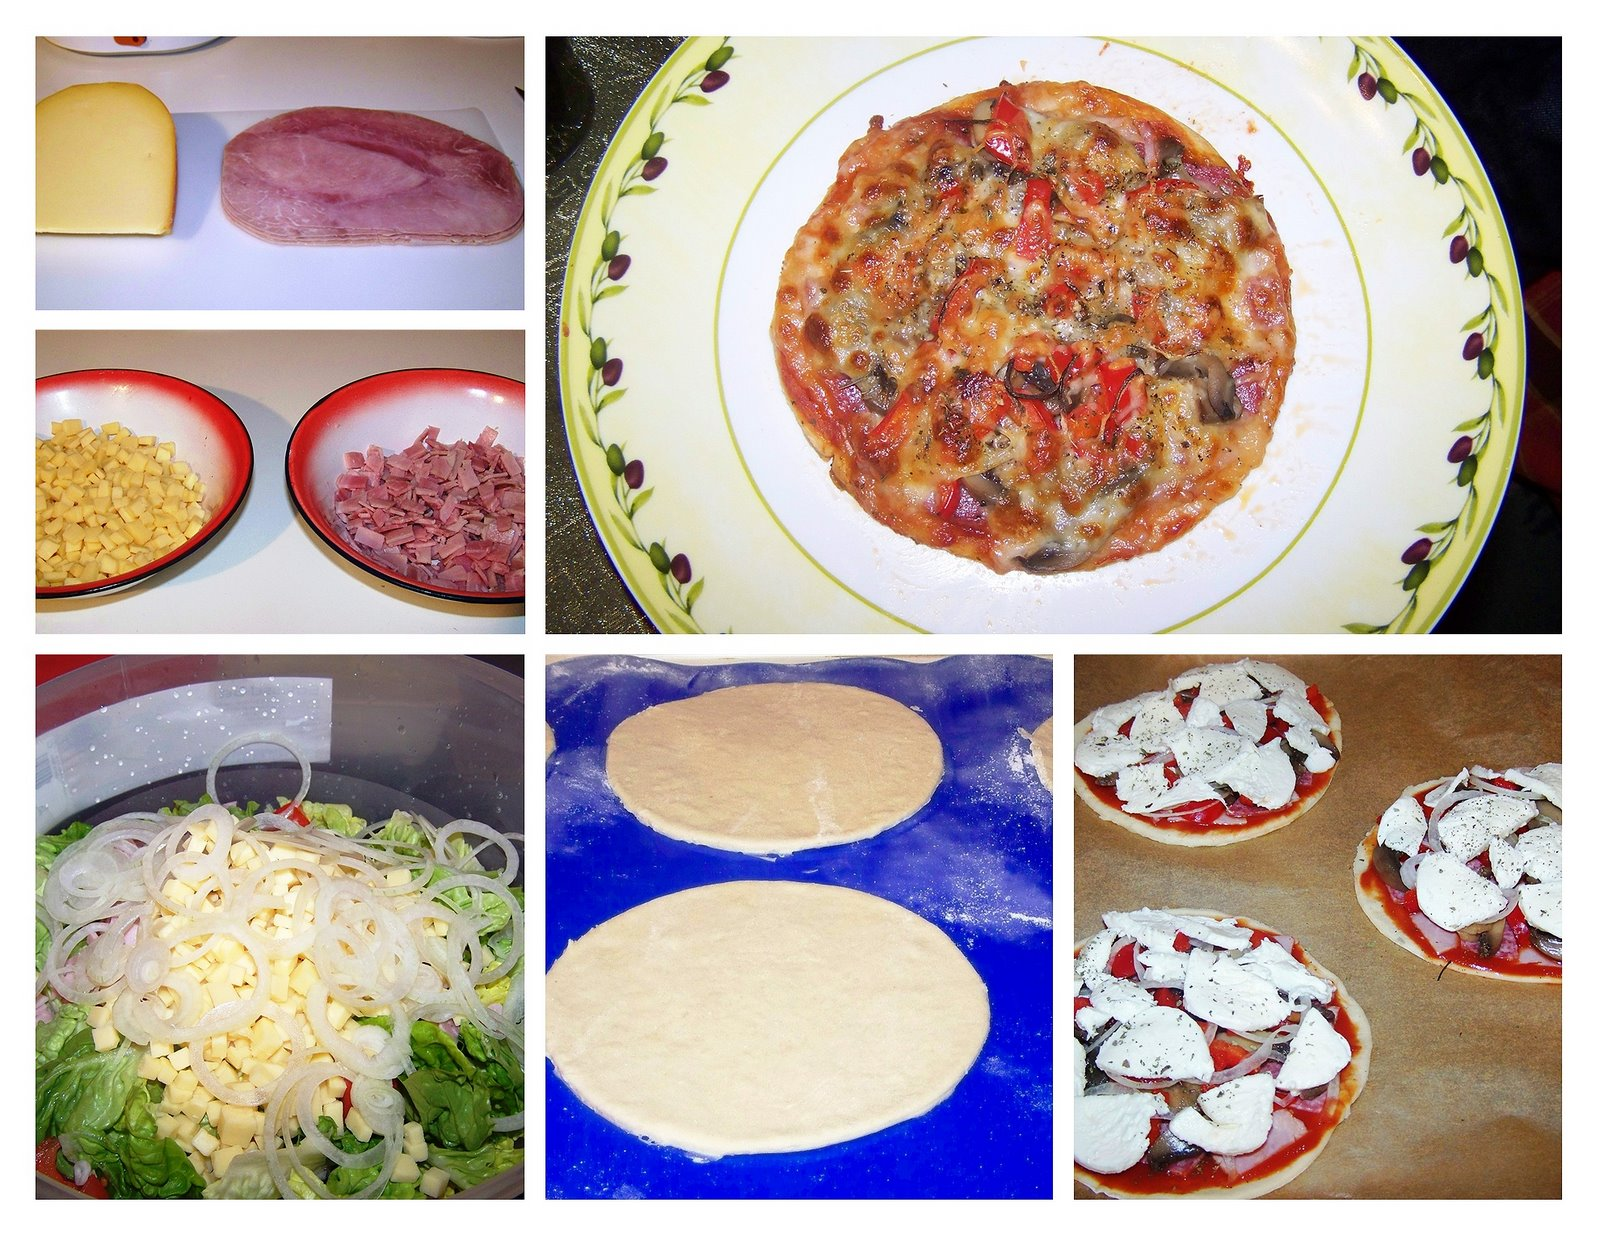 [Pizza+and+Salad_Page000.jpg]